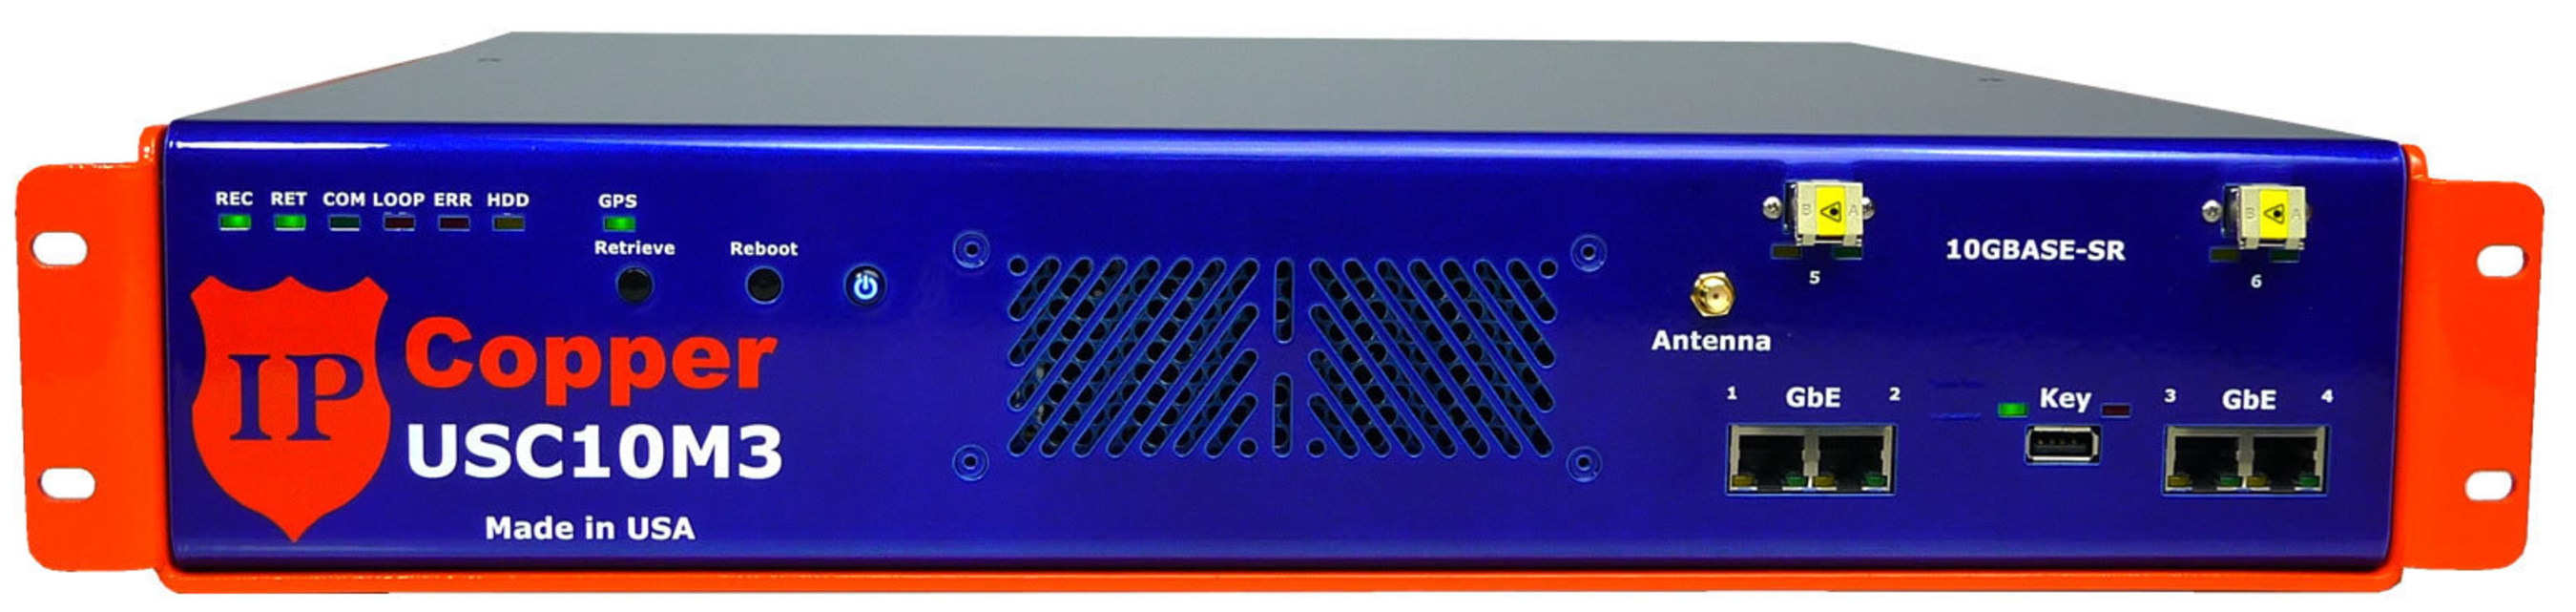 IPCopper Introduces 10Gbps Packet Capture Appliance with Double Power Redundancy